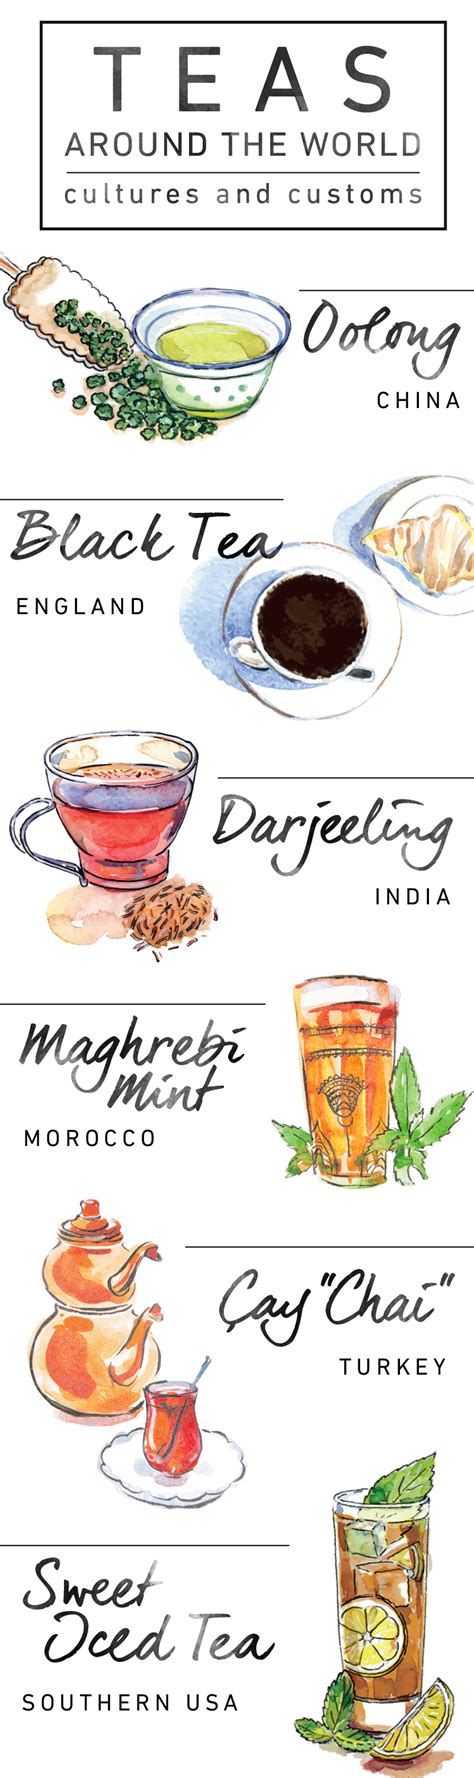 Teas Around the World: Cultures and Customs